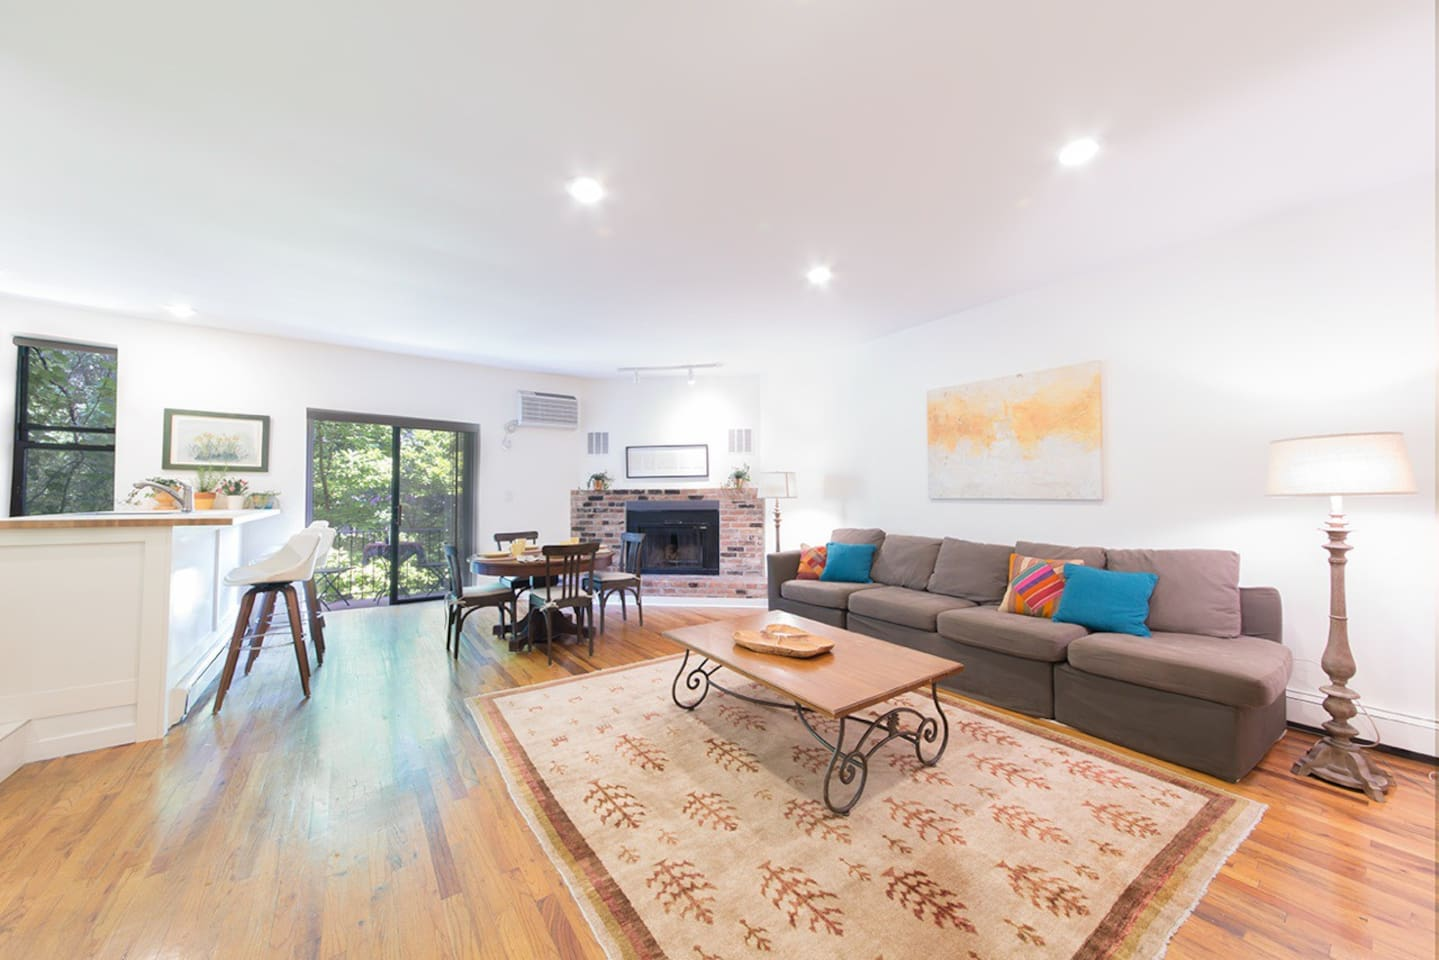 floor 2 - lovely open layout with working fireplace and w/d in the unit